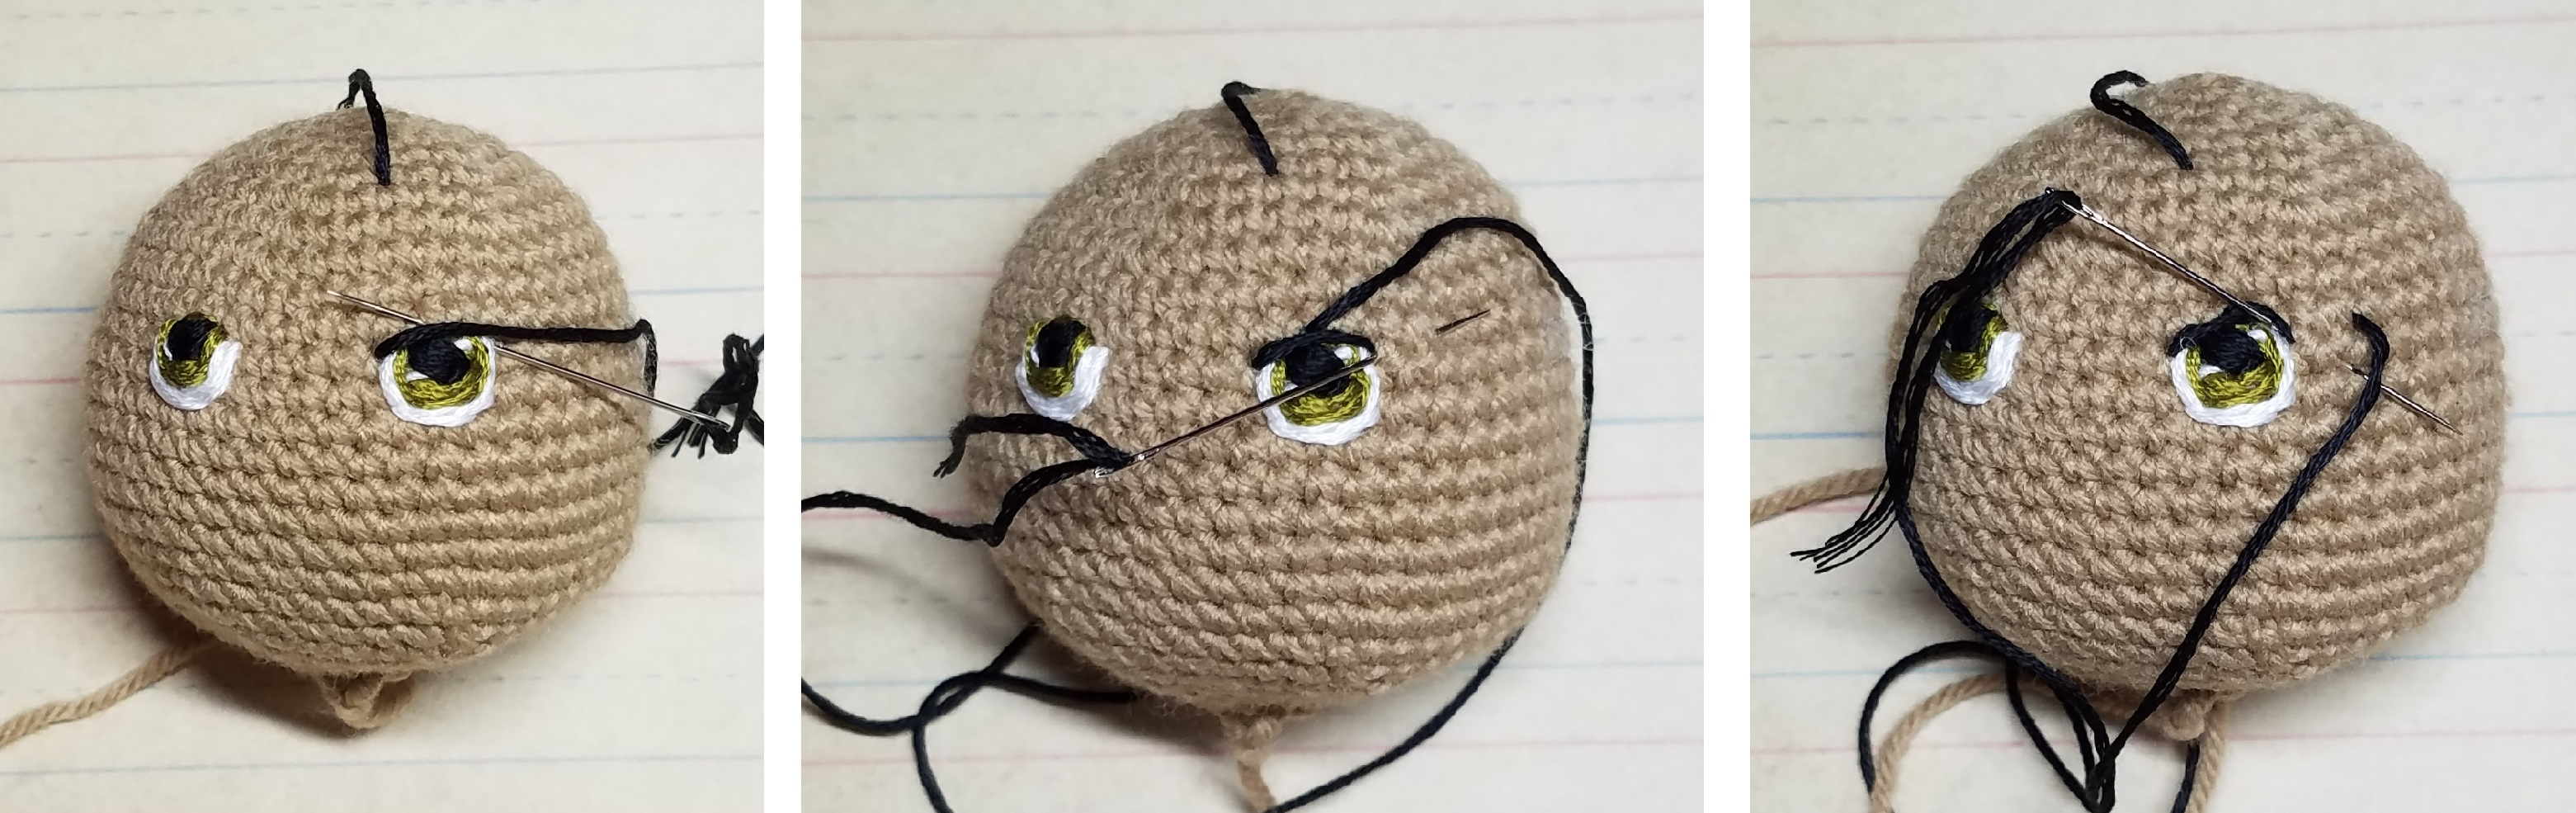 Amigurumi Eye placement | Crochet eyes, Crochet techniques ... | 985x3122